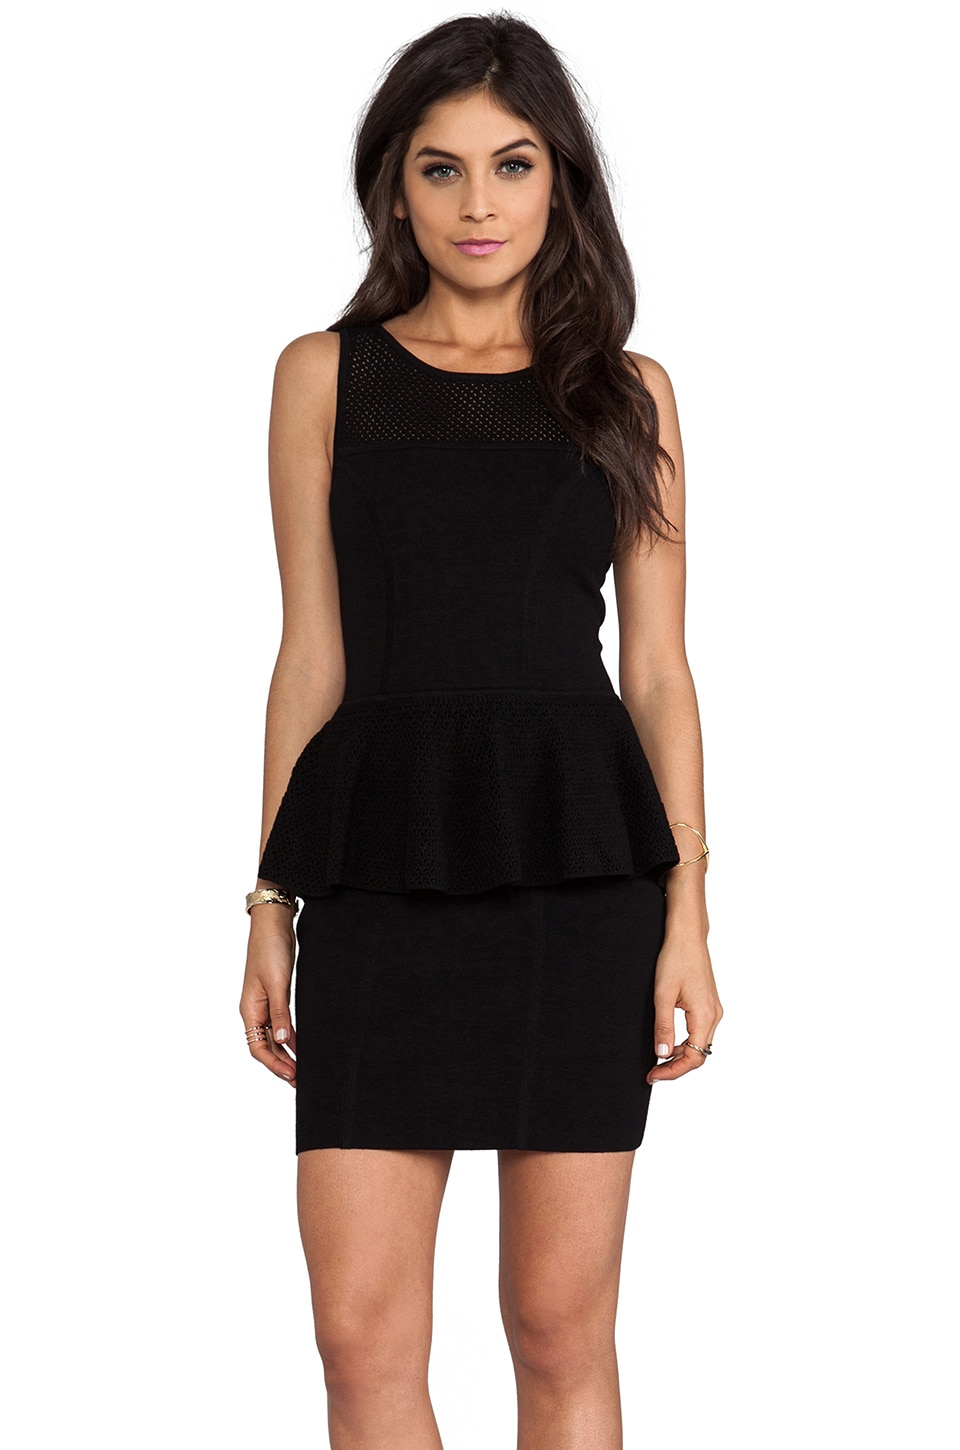 MILLY May Knits Nicole Peplum Dress in Black